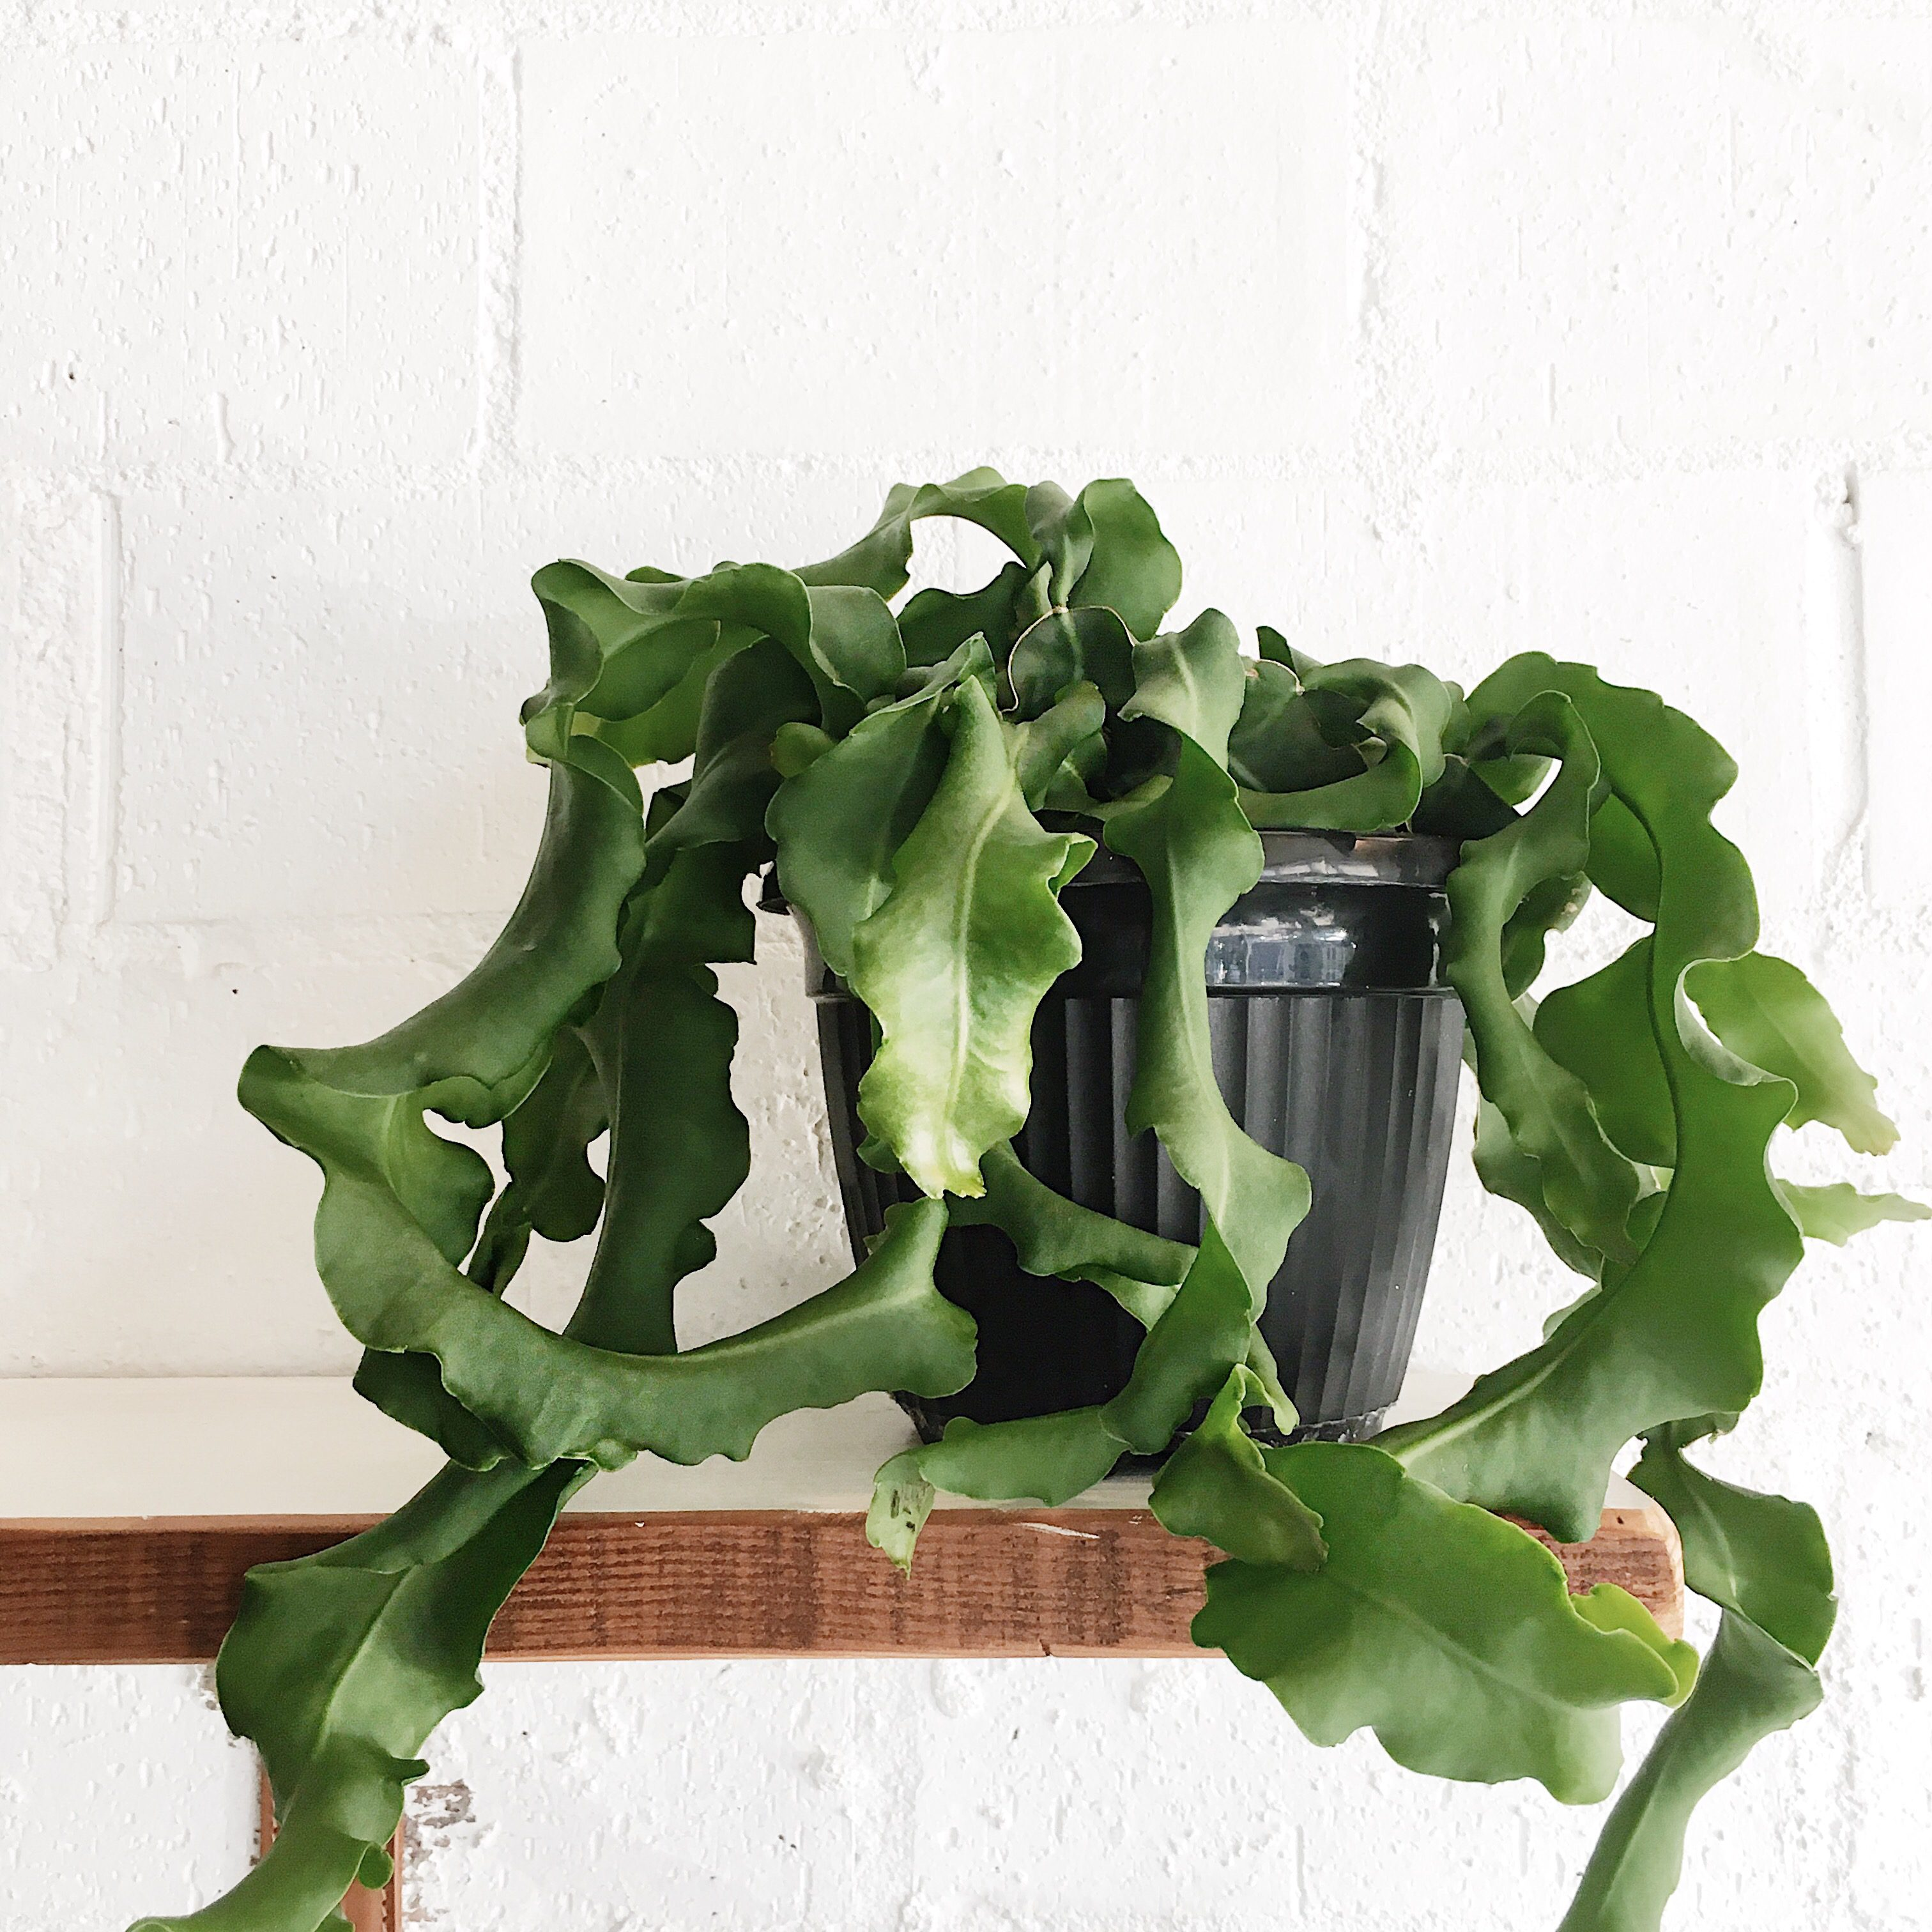 indoor plants that like direct sunlight grow indoors 7 epiphyllum guatemalense did someone say seaweed also known as curly sue for her curved and curling tendrils the has delicate the top 10 indoor plants to decorate your home fat mum slim